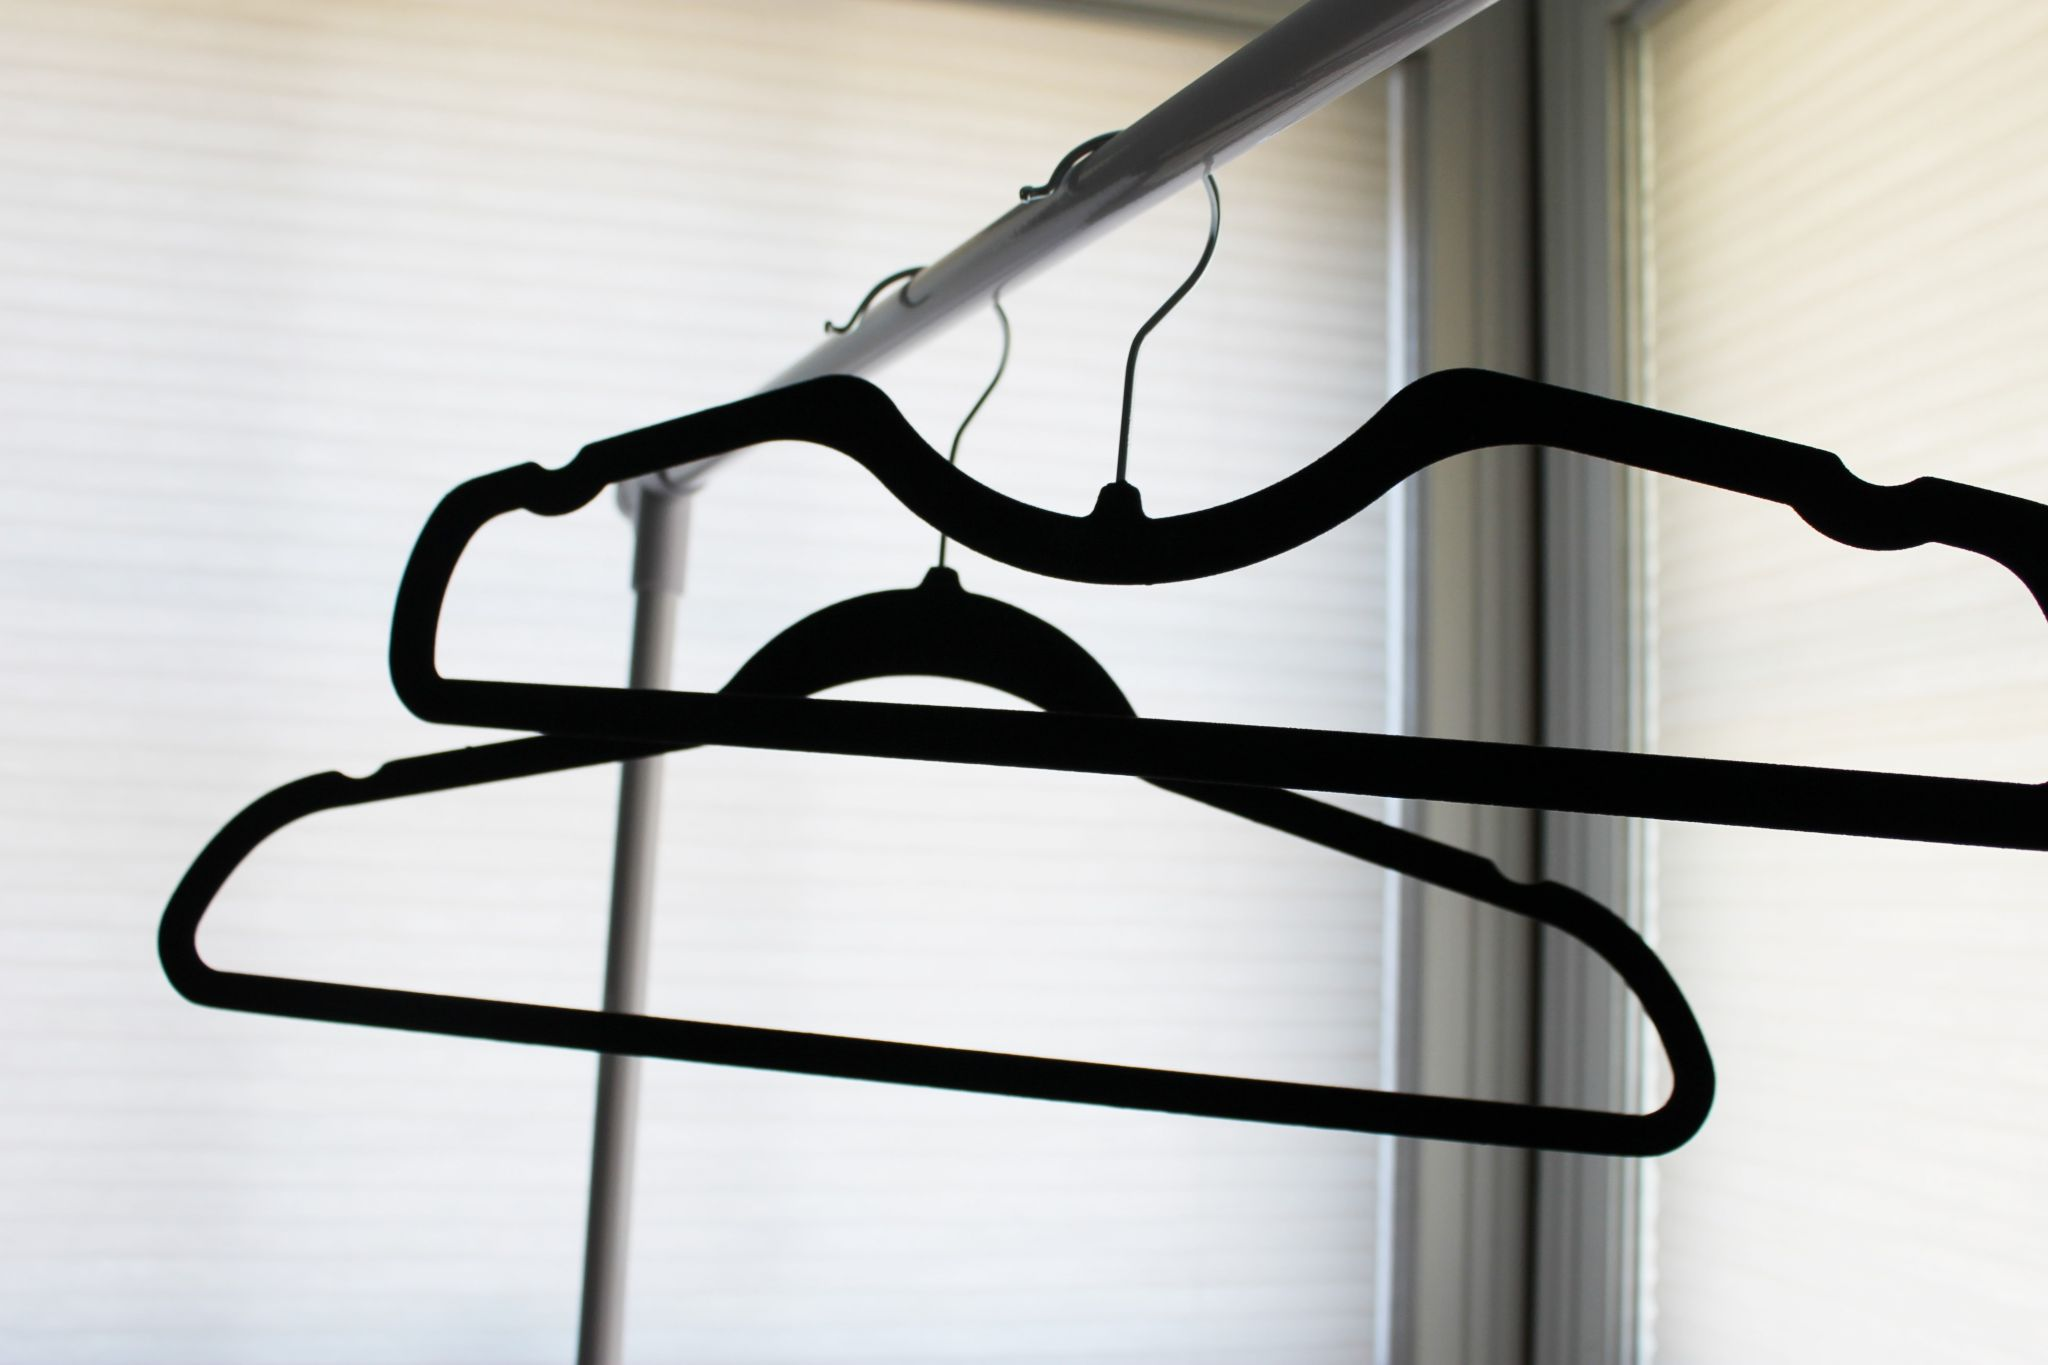 Higher Hangers review- a comparison of a regular hanger and a Higher Hanger on JK Style